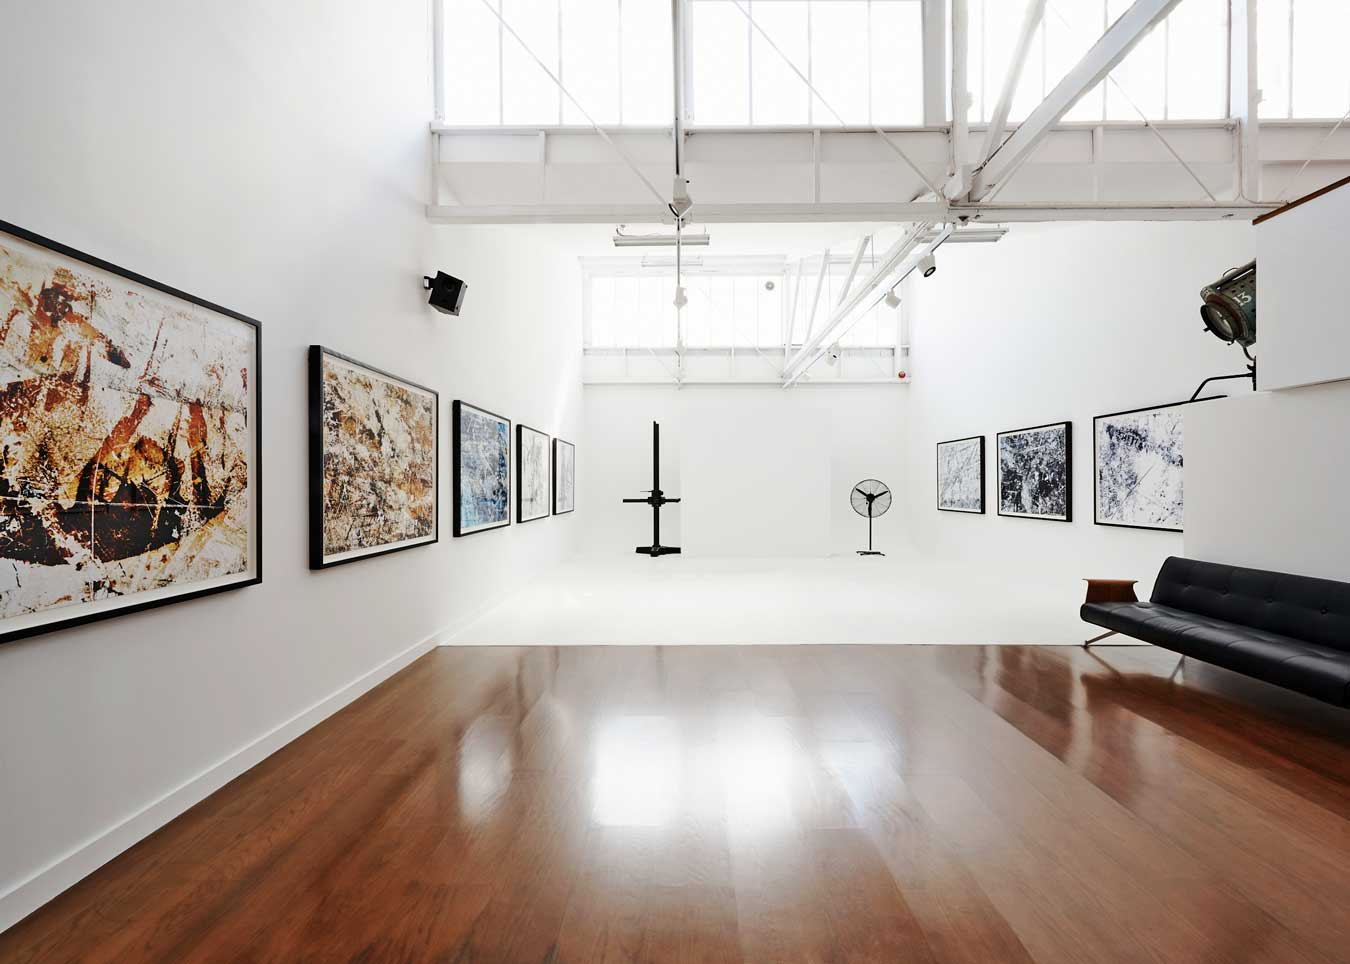 isamu-sawas-studio-and-exhibition-space-in-melbourne